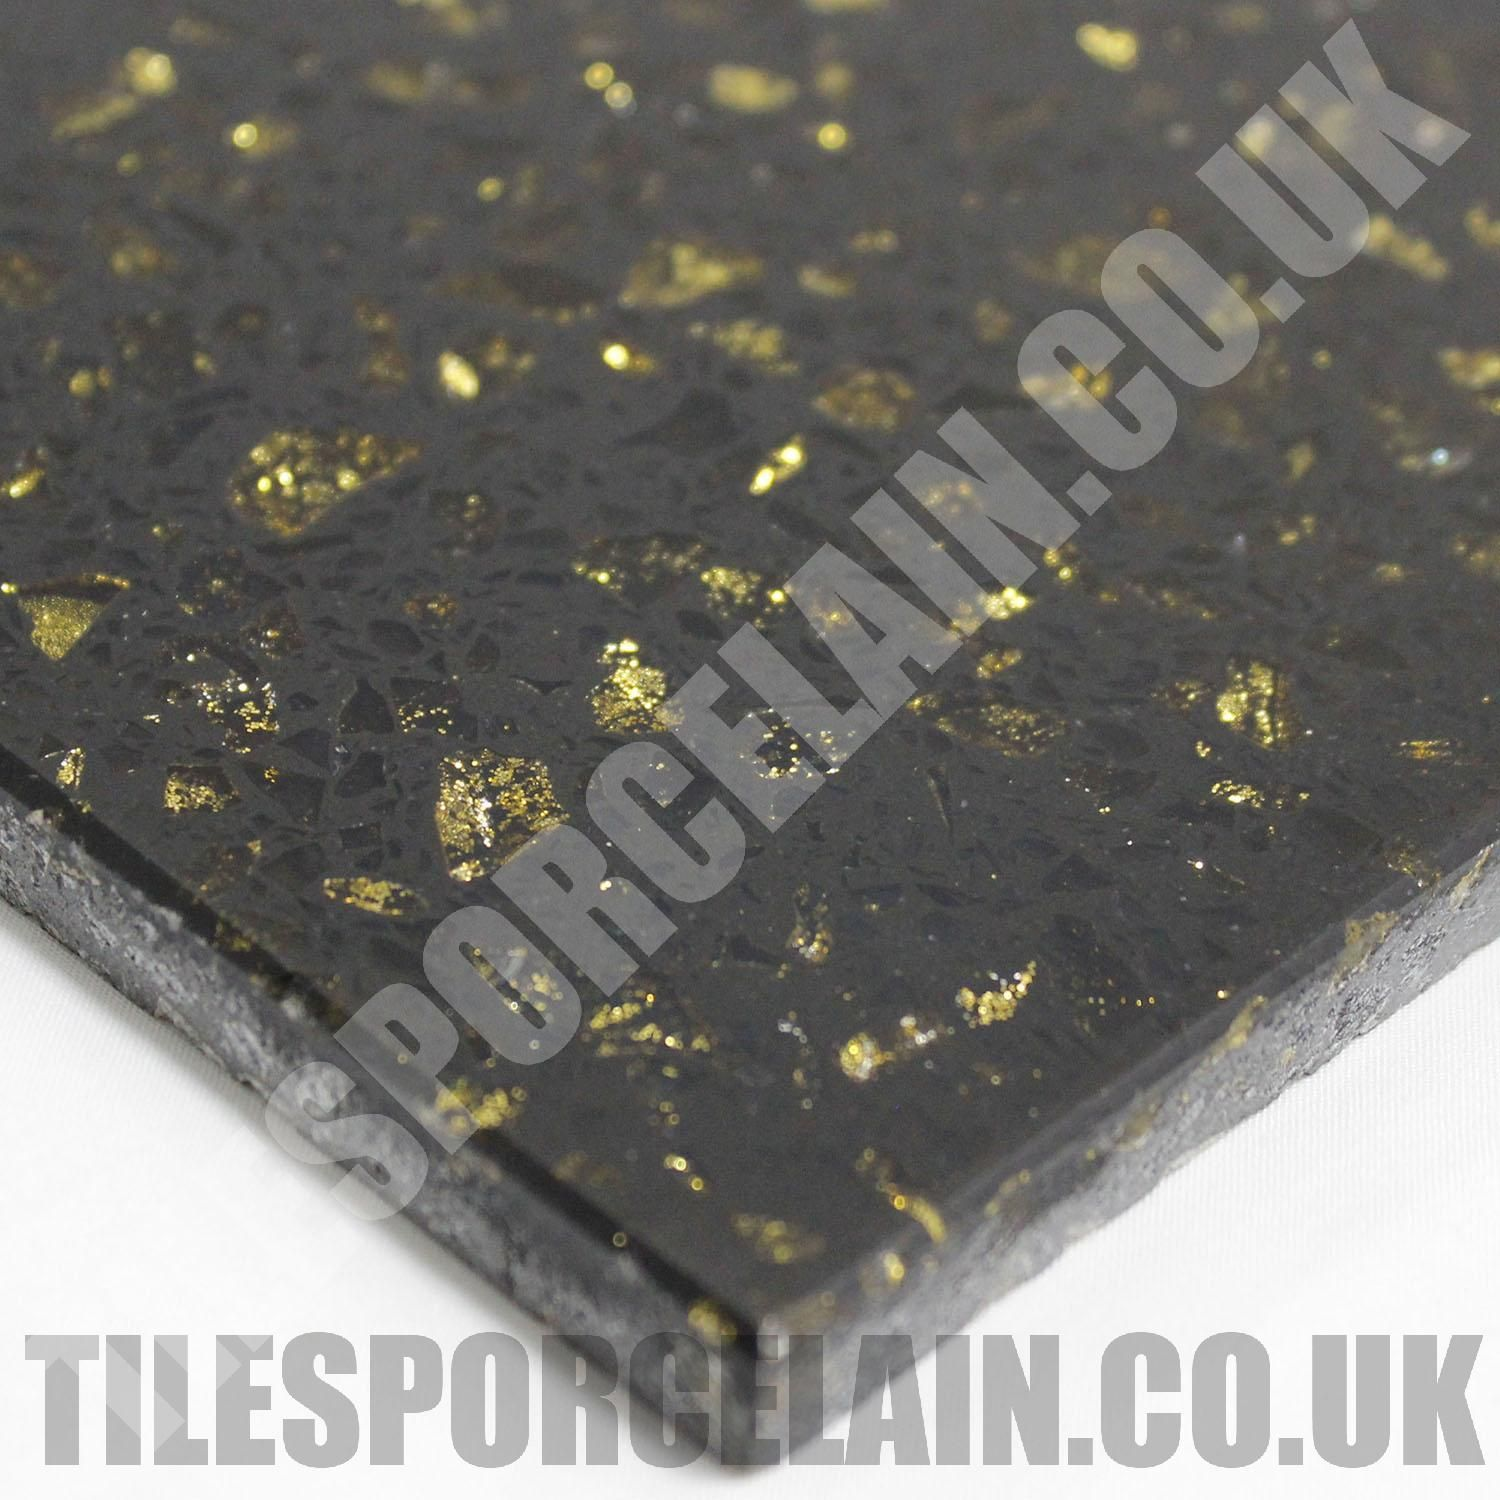 Cosmos Black Quartz Tiles With Gold Mirror Flecks These Wall And